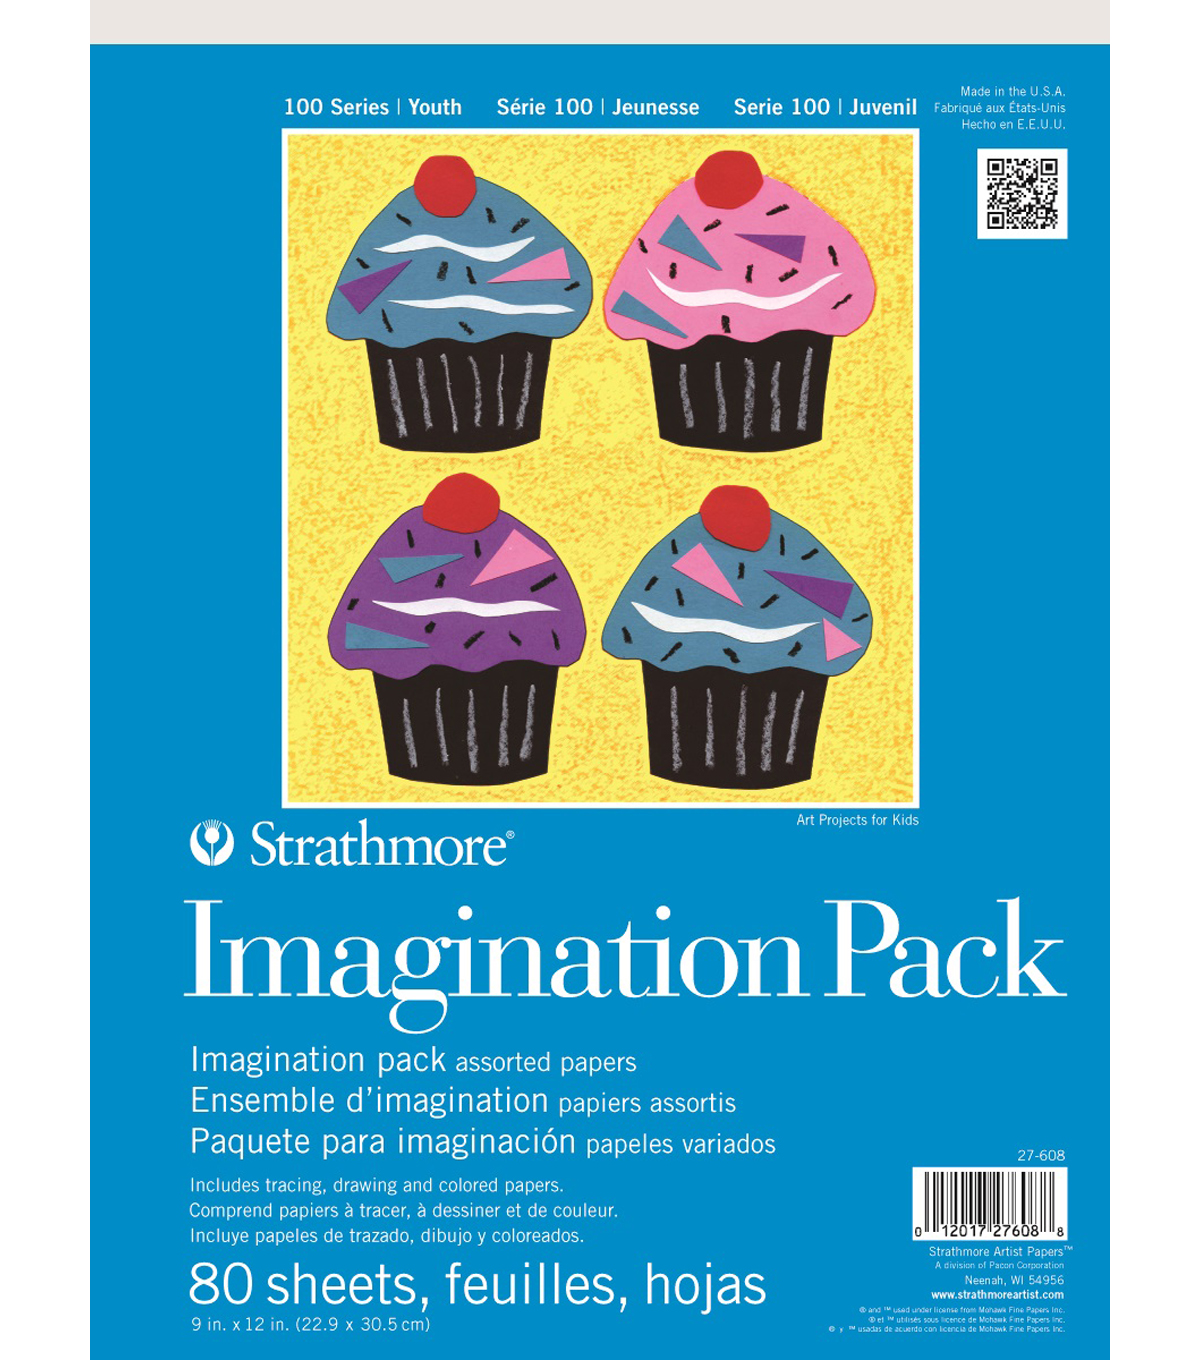 Strathmore 100 Series Youth Imagination Pack, 9x12, 80 Sheets